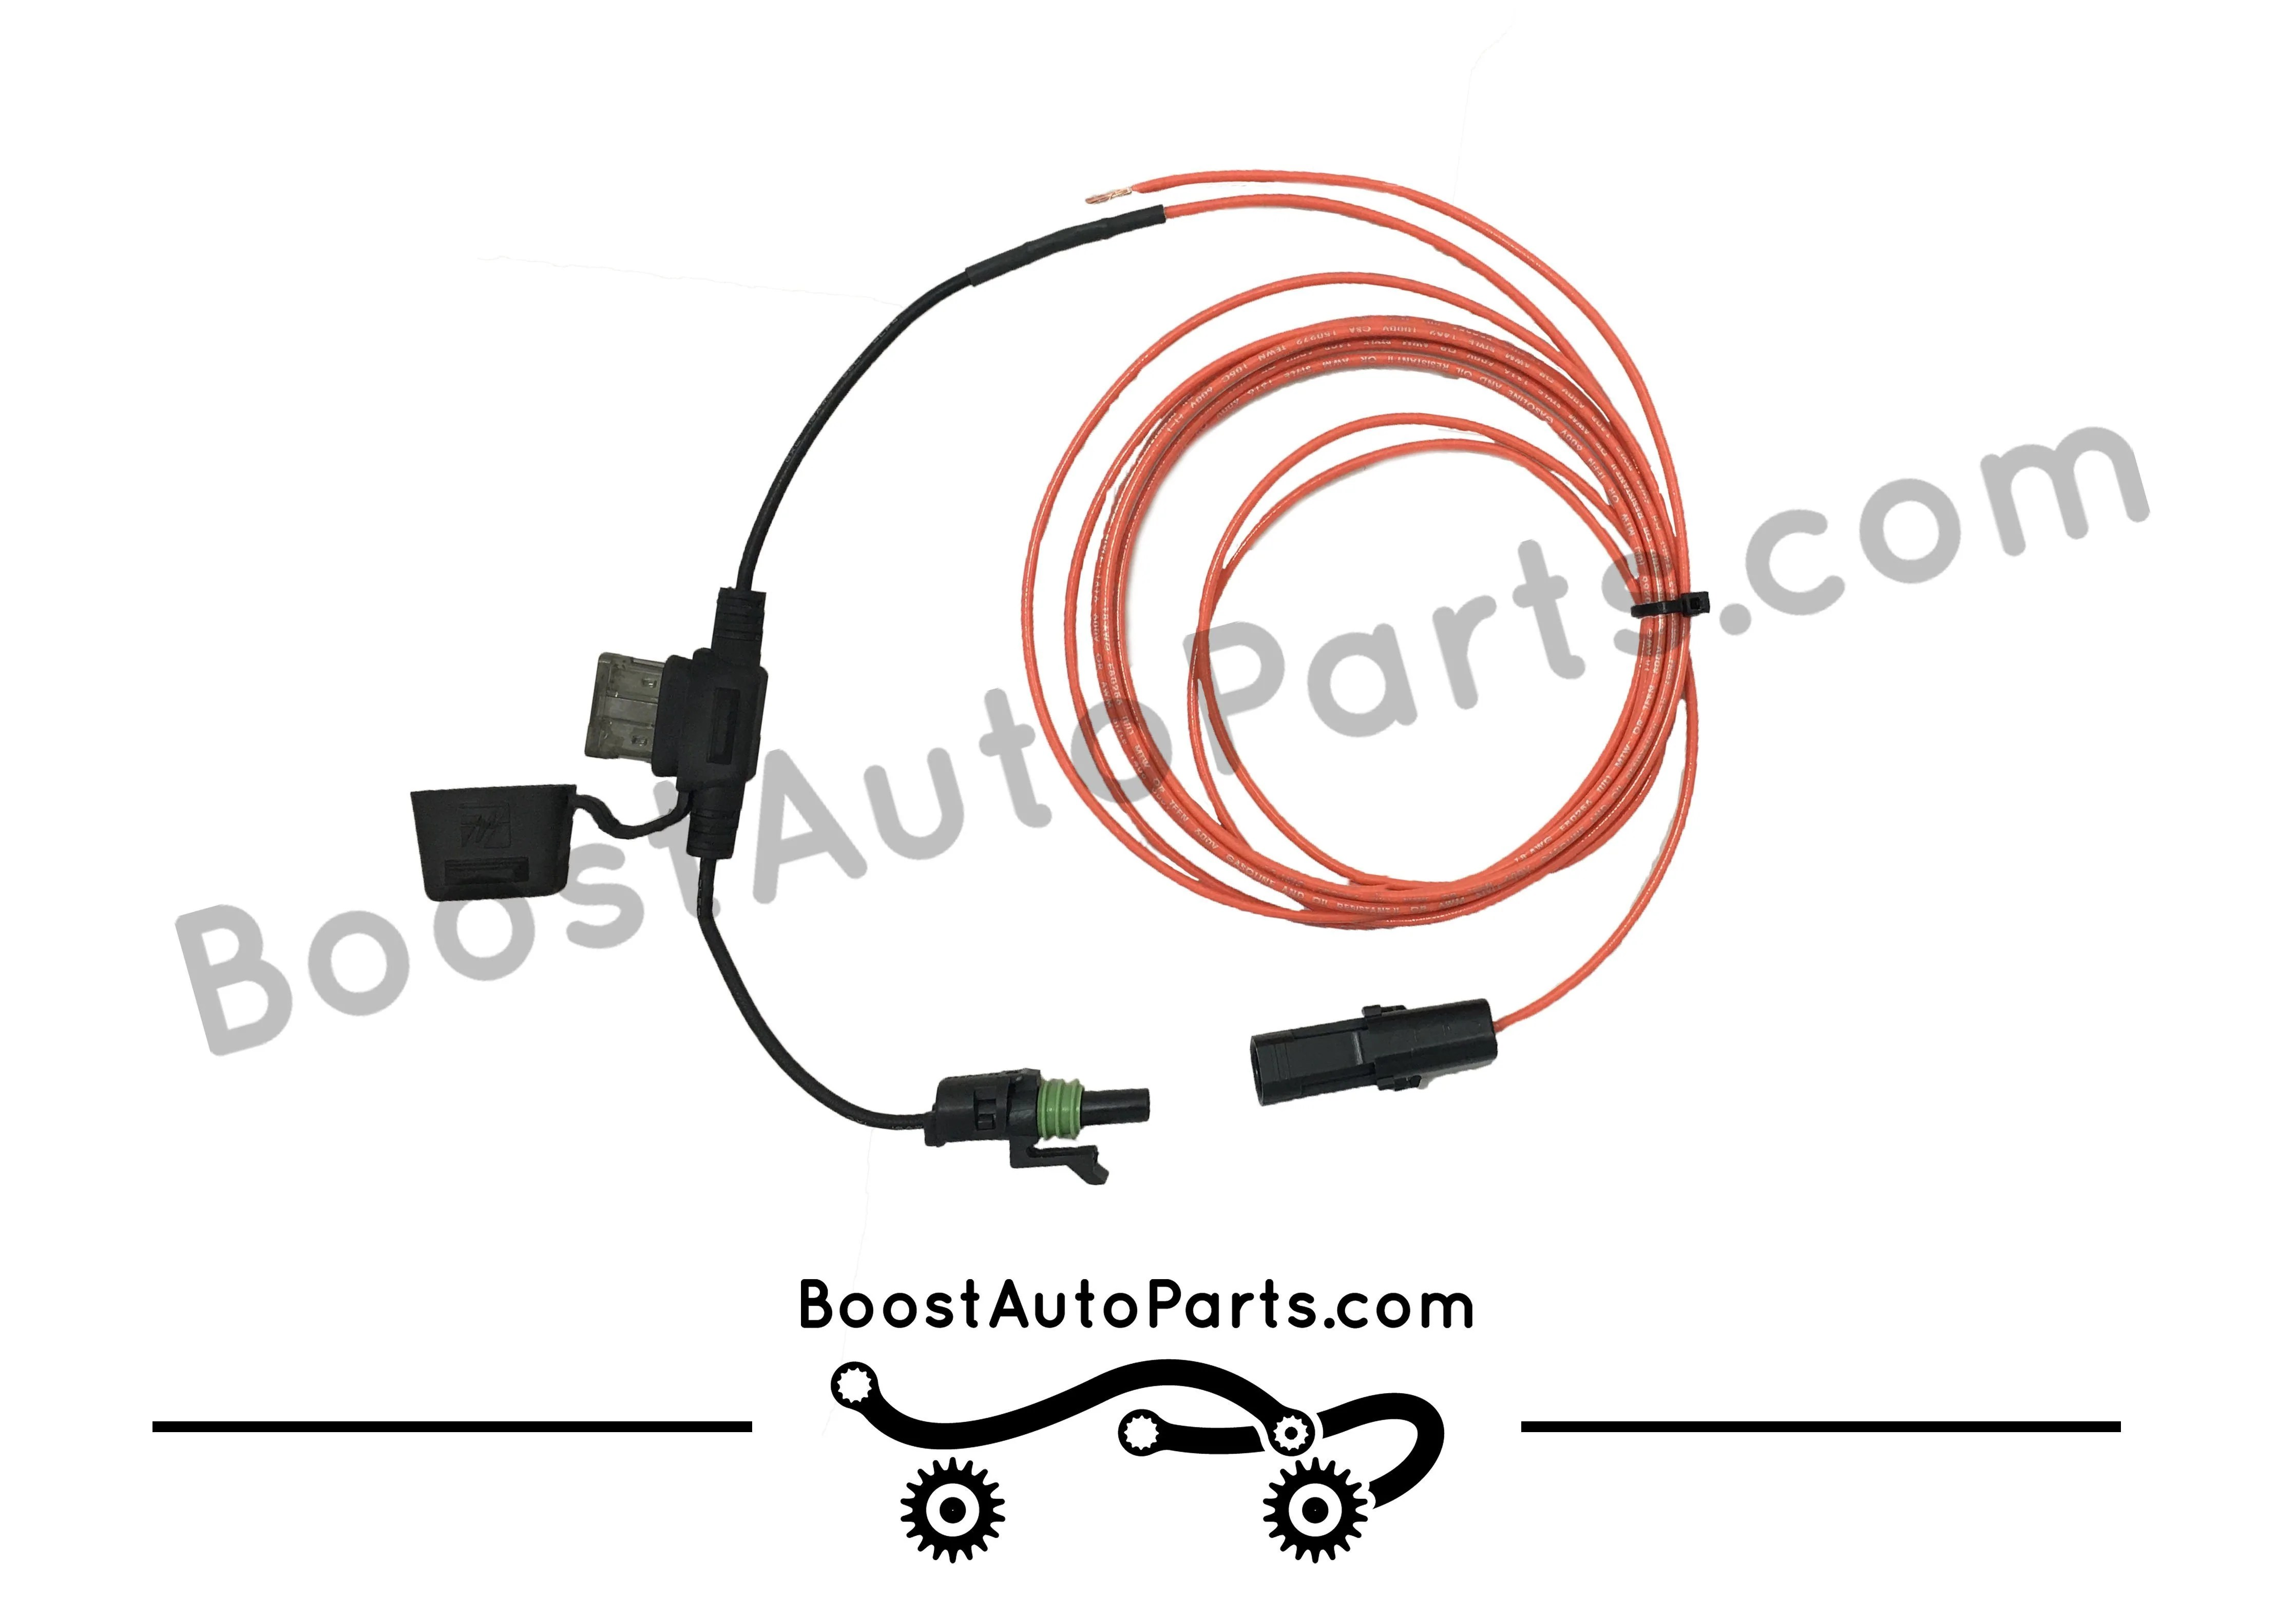 gm wiring harness parts blog wiring diagram gm wire harness parts [ 3999 x 2818 Pixel ]